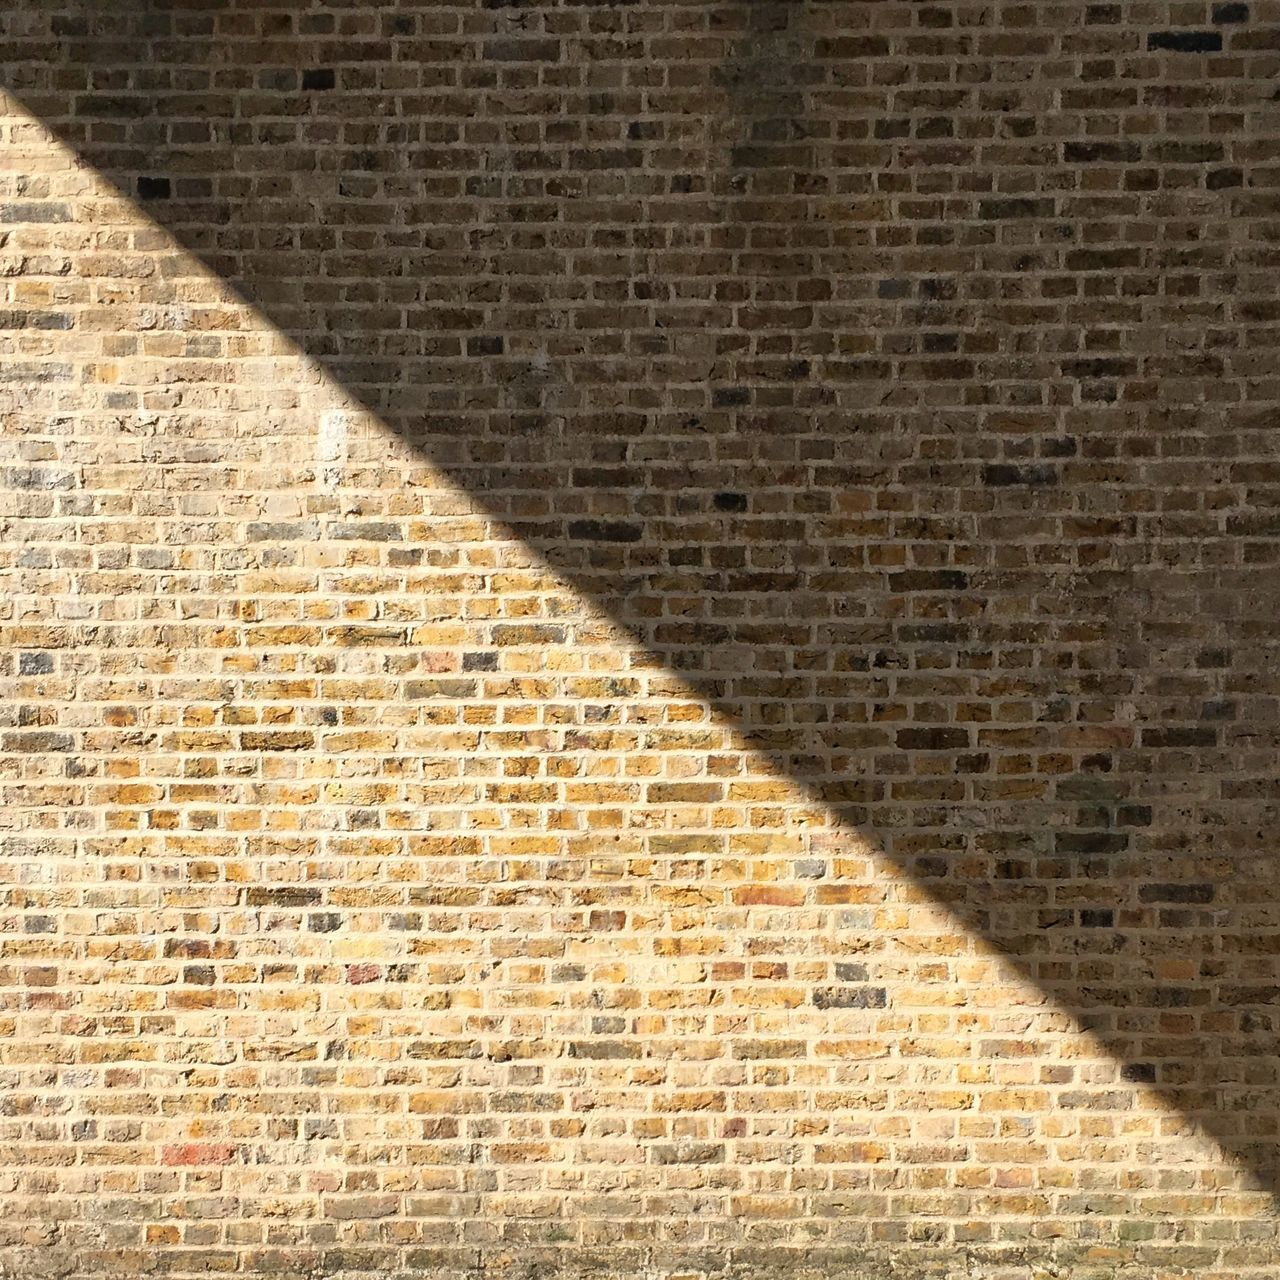 brick wall, brick, wall, shadow, wall - building feature, architecture, backgrounds, built structure, textured, no people, sunlight, full frame, day, pattern, outdoors, nature, building exterior, brown, city, creativity, focus on shadow